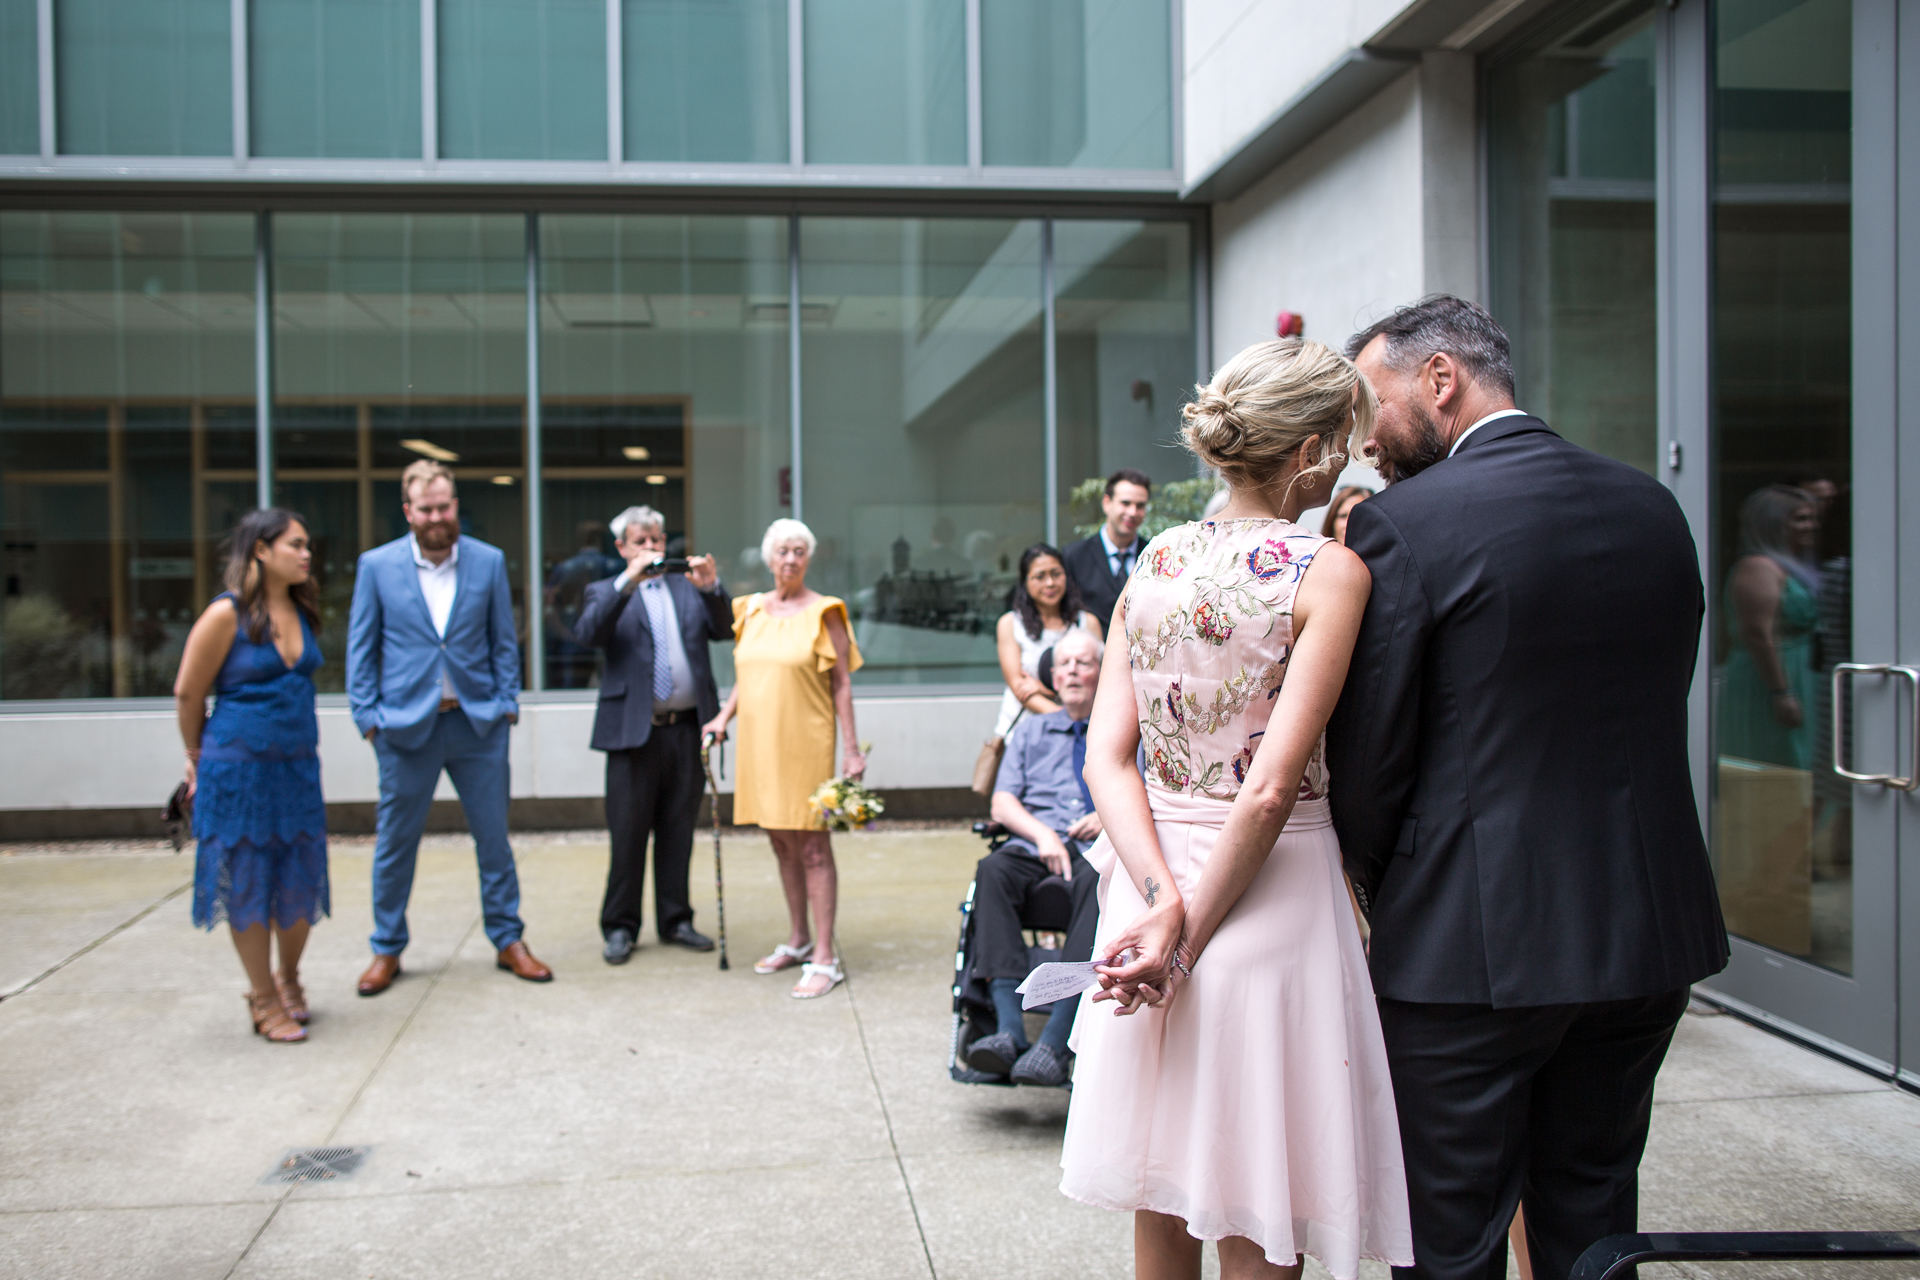 Outdoor Ontario, Canada Elopement Ceremony Image | The wedding ceremony was intimate, attended by a few family members